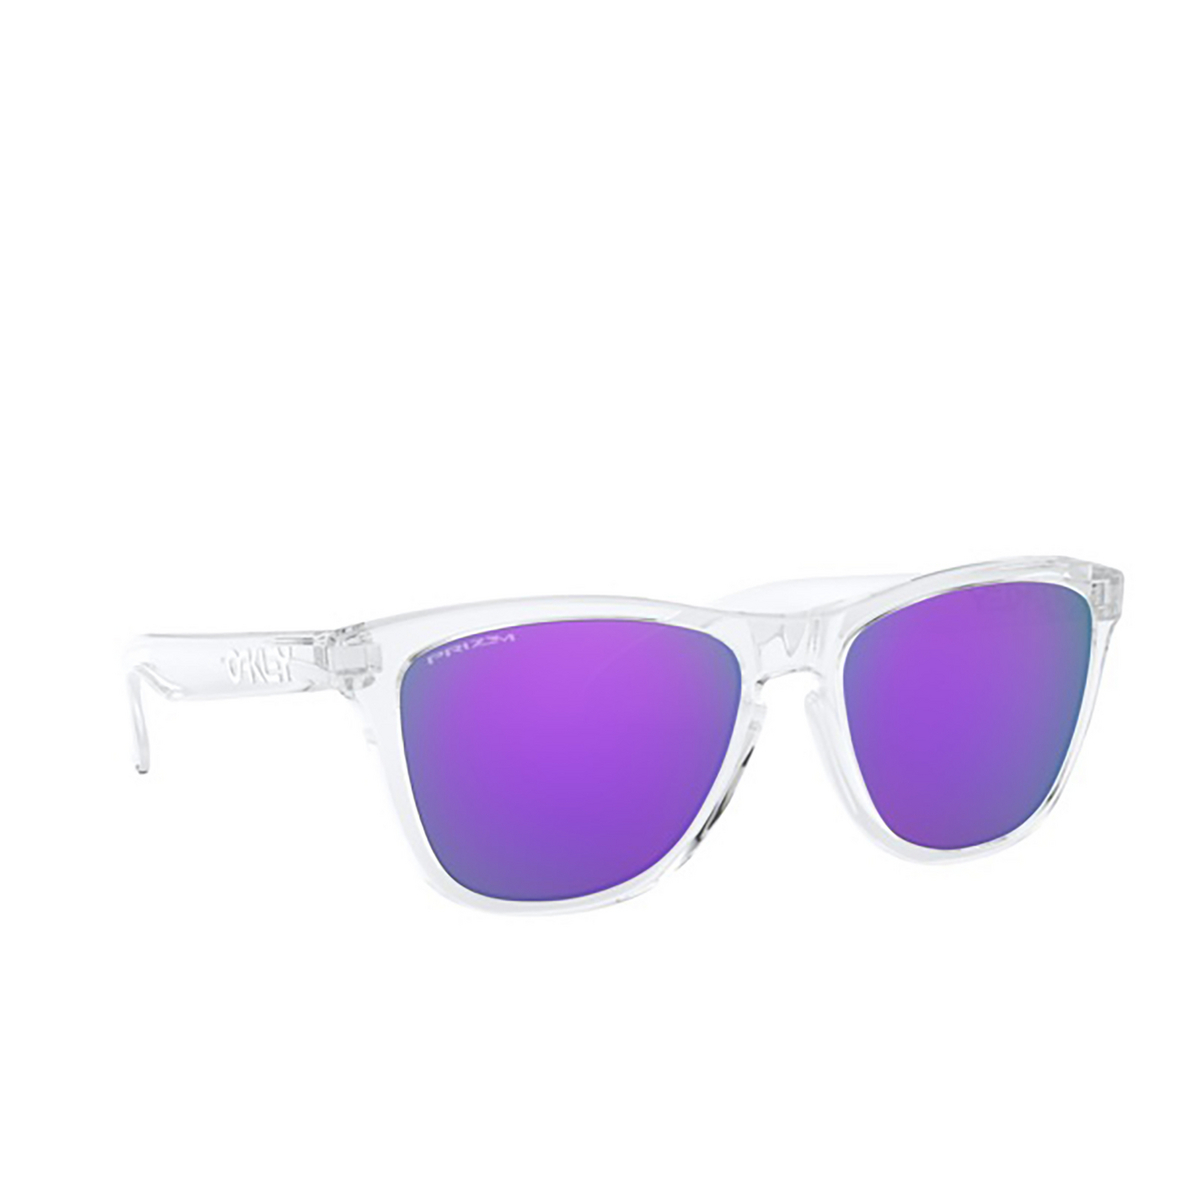 Oakley® Square Sunglasses: Frogskins OO9013 color Polished Clear 9013H7 - three-quarters view.